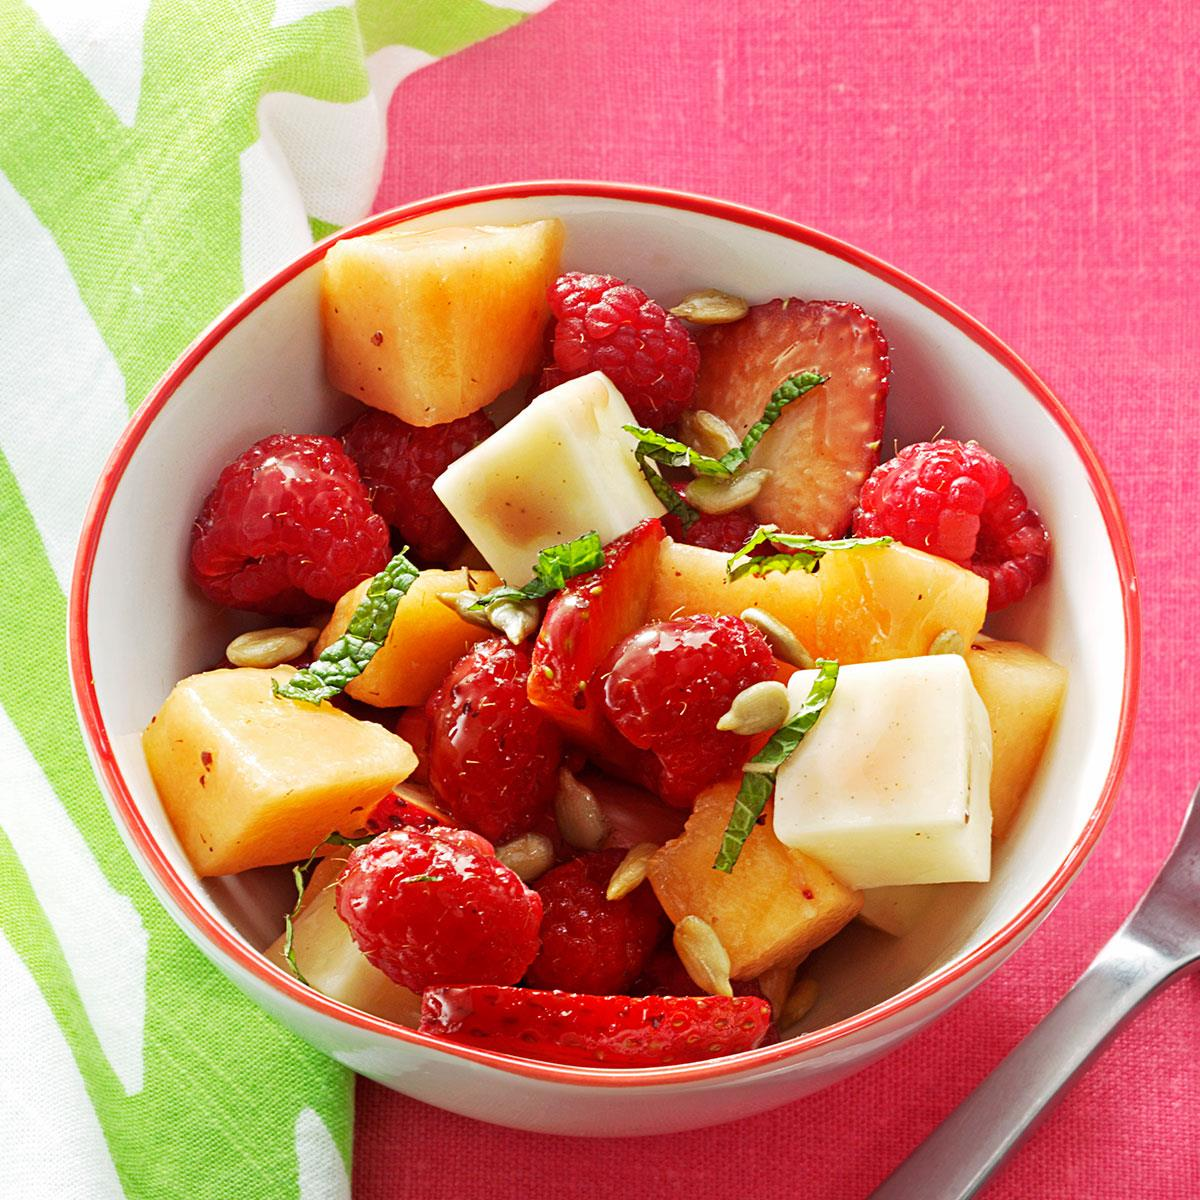 Sunny Strawberry Cantaloupe Salad Recipe Taste Of Home The nutrients that these melons contain may help preserve eye health, prevent asthma, and more. sunny strawberry cantaloupe salad